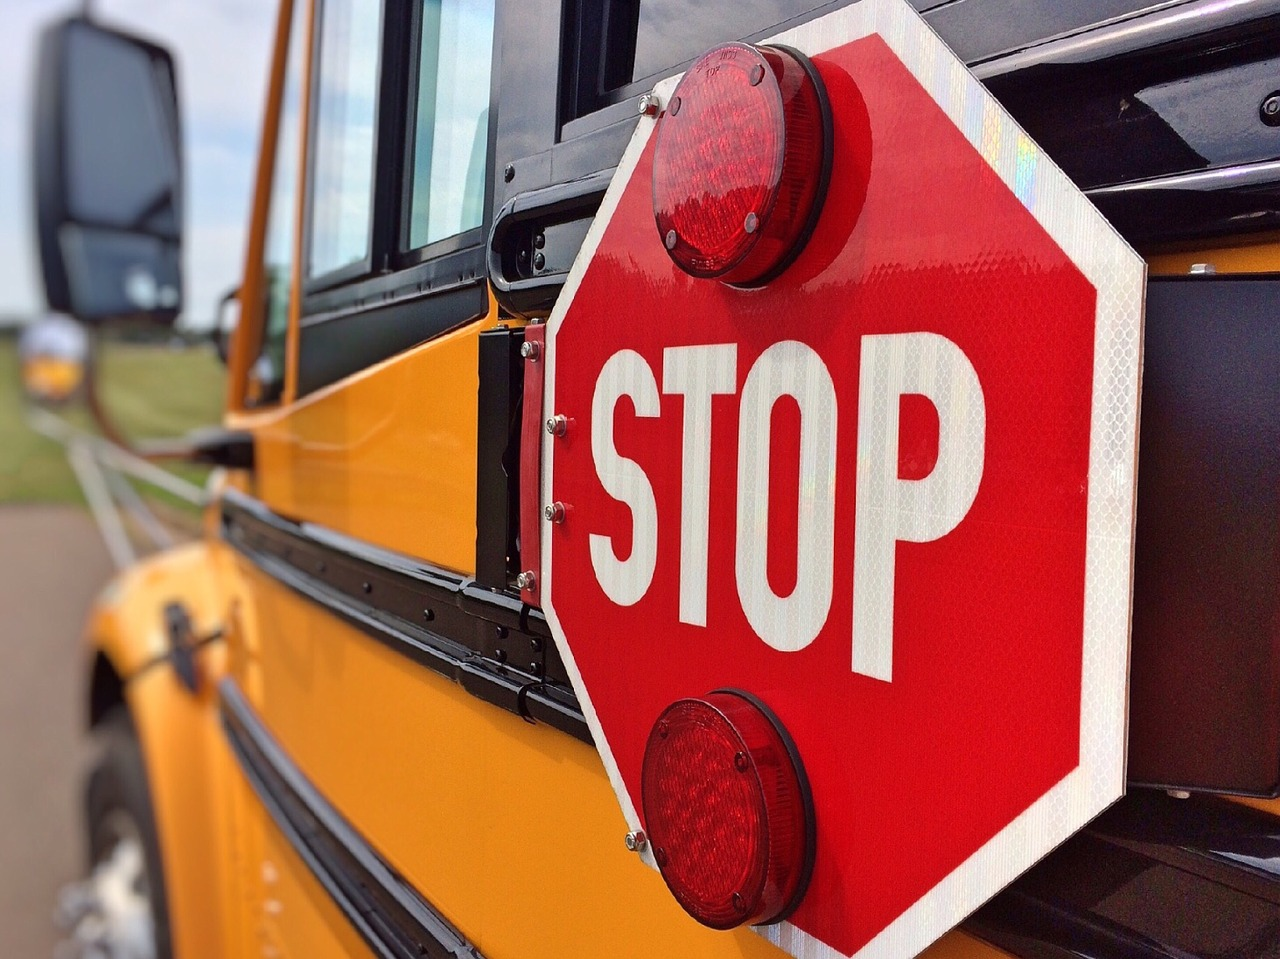 A Wilmington man collided with a school bus on South 16th Street this morning. (Port City Daily photo/File)